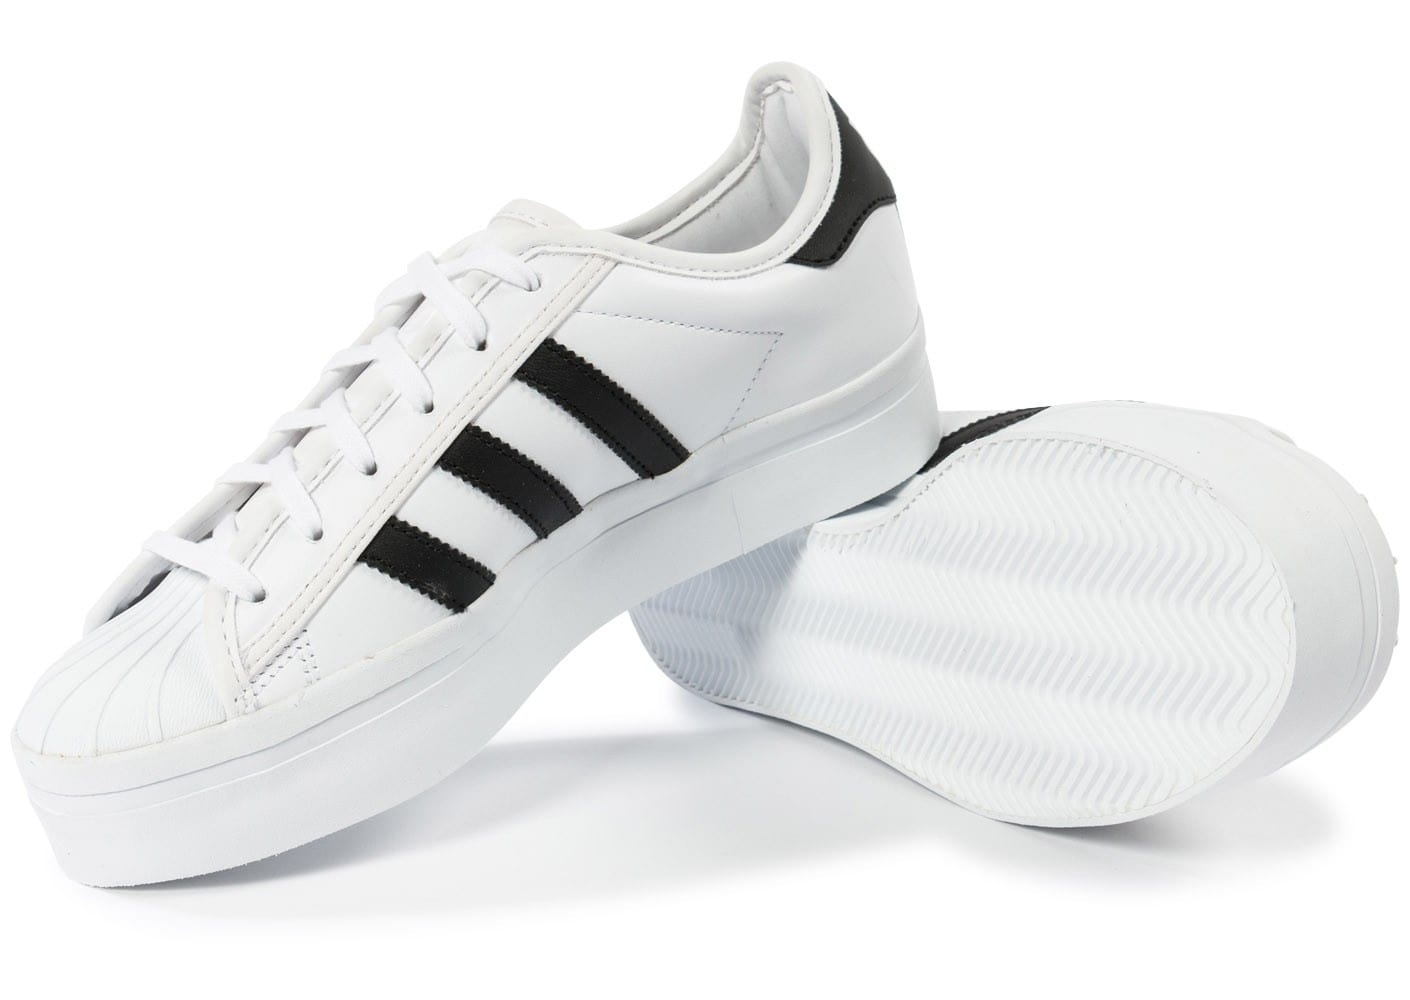 adidas superstar rize plateforme blanche chaussures adidas chausport. Black Bedroom Furniture Sets. Home Design Ideas